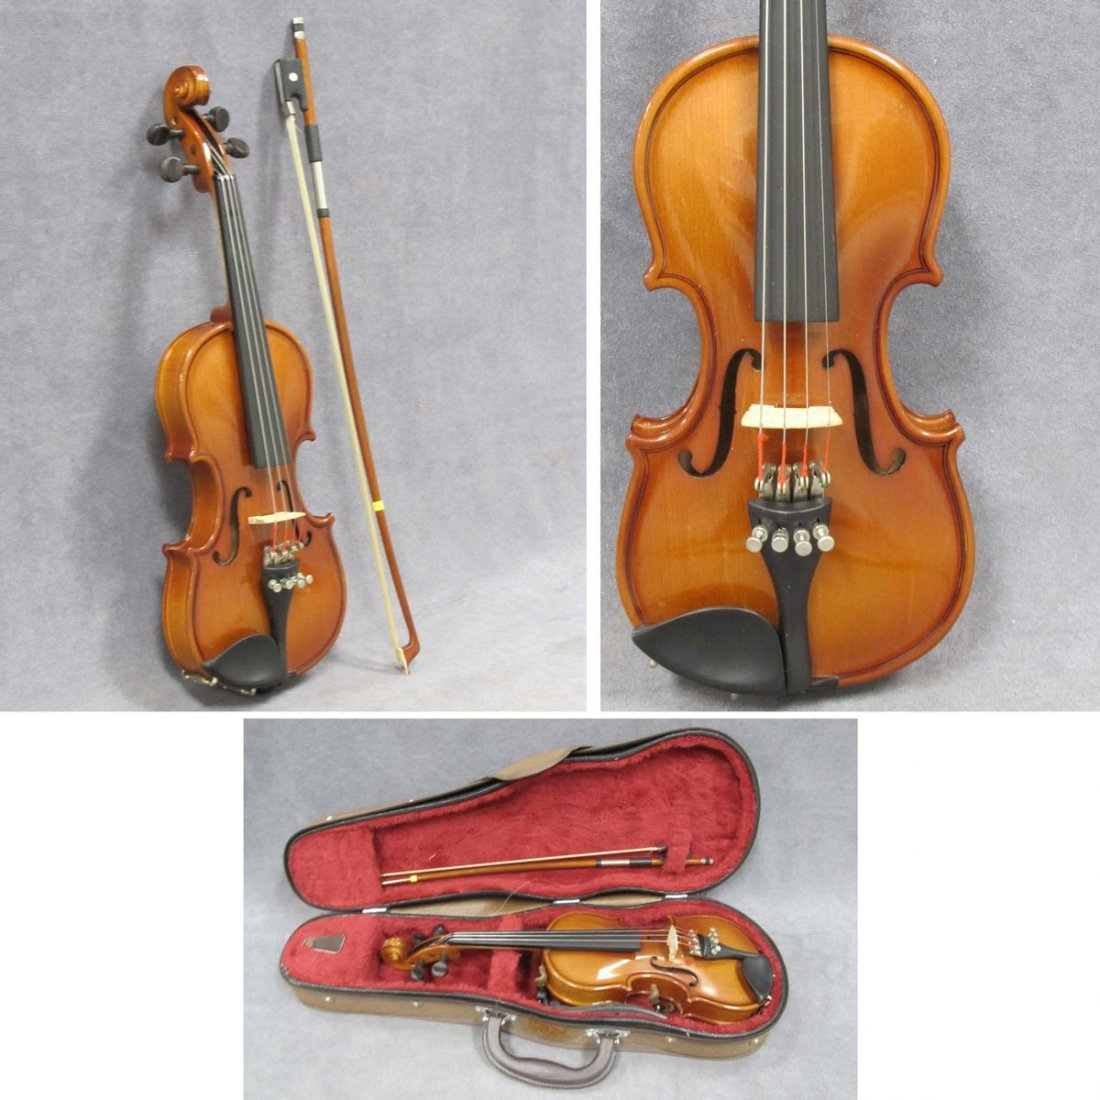 CHILD'S HALF-SIZE VIOLIN WITH BOW AND CASE